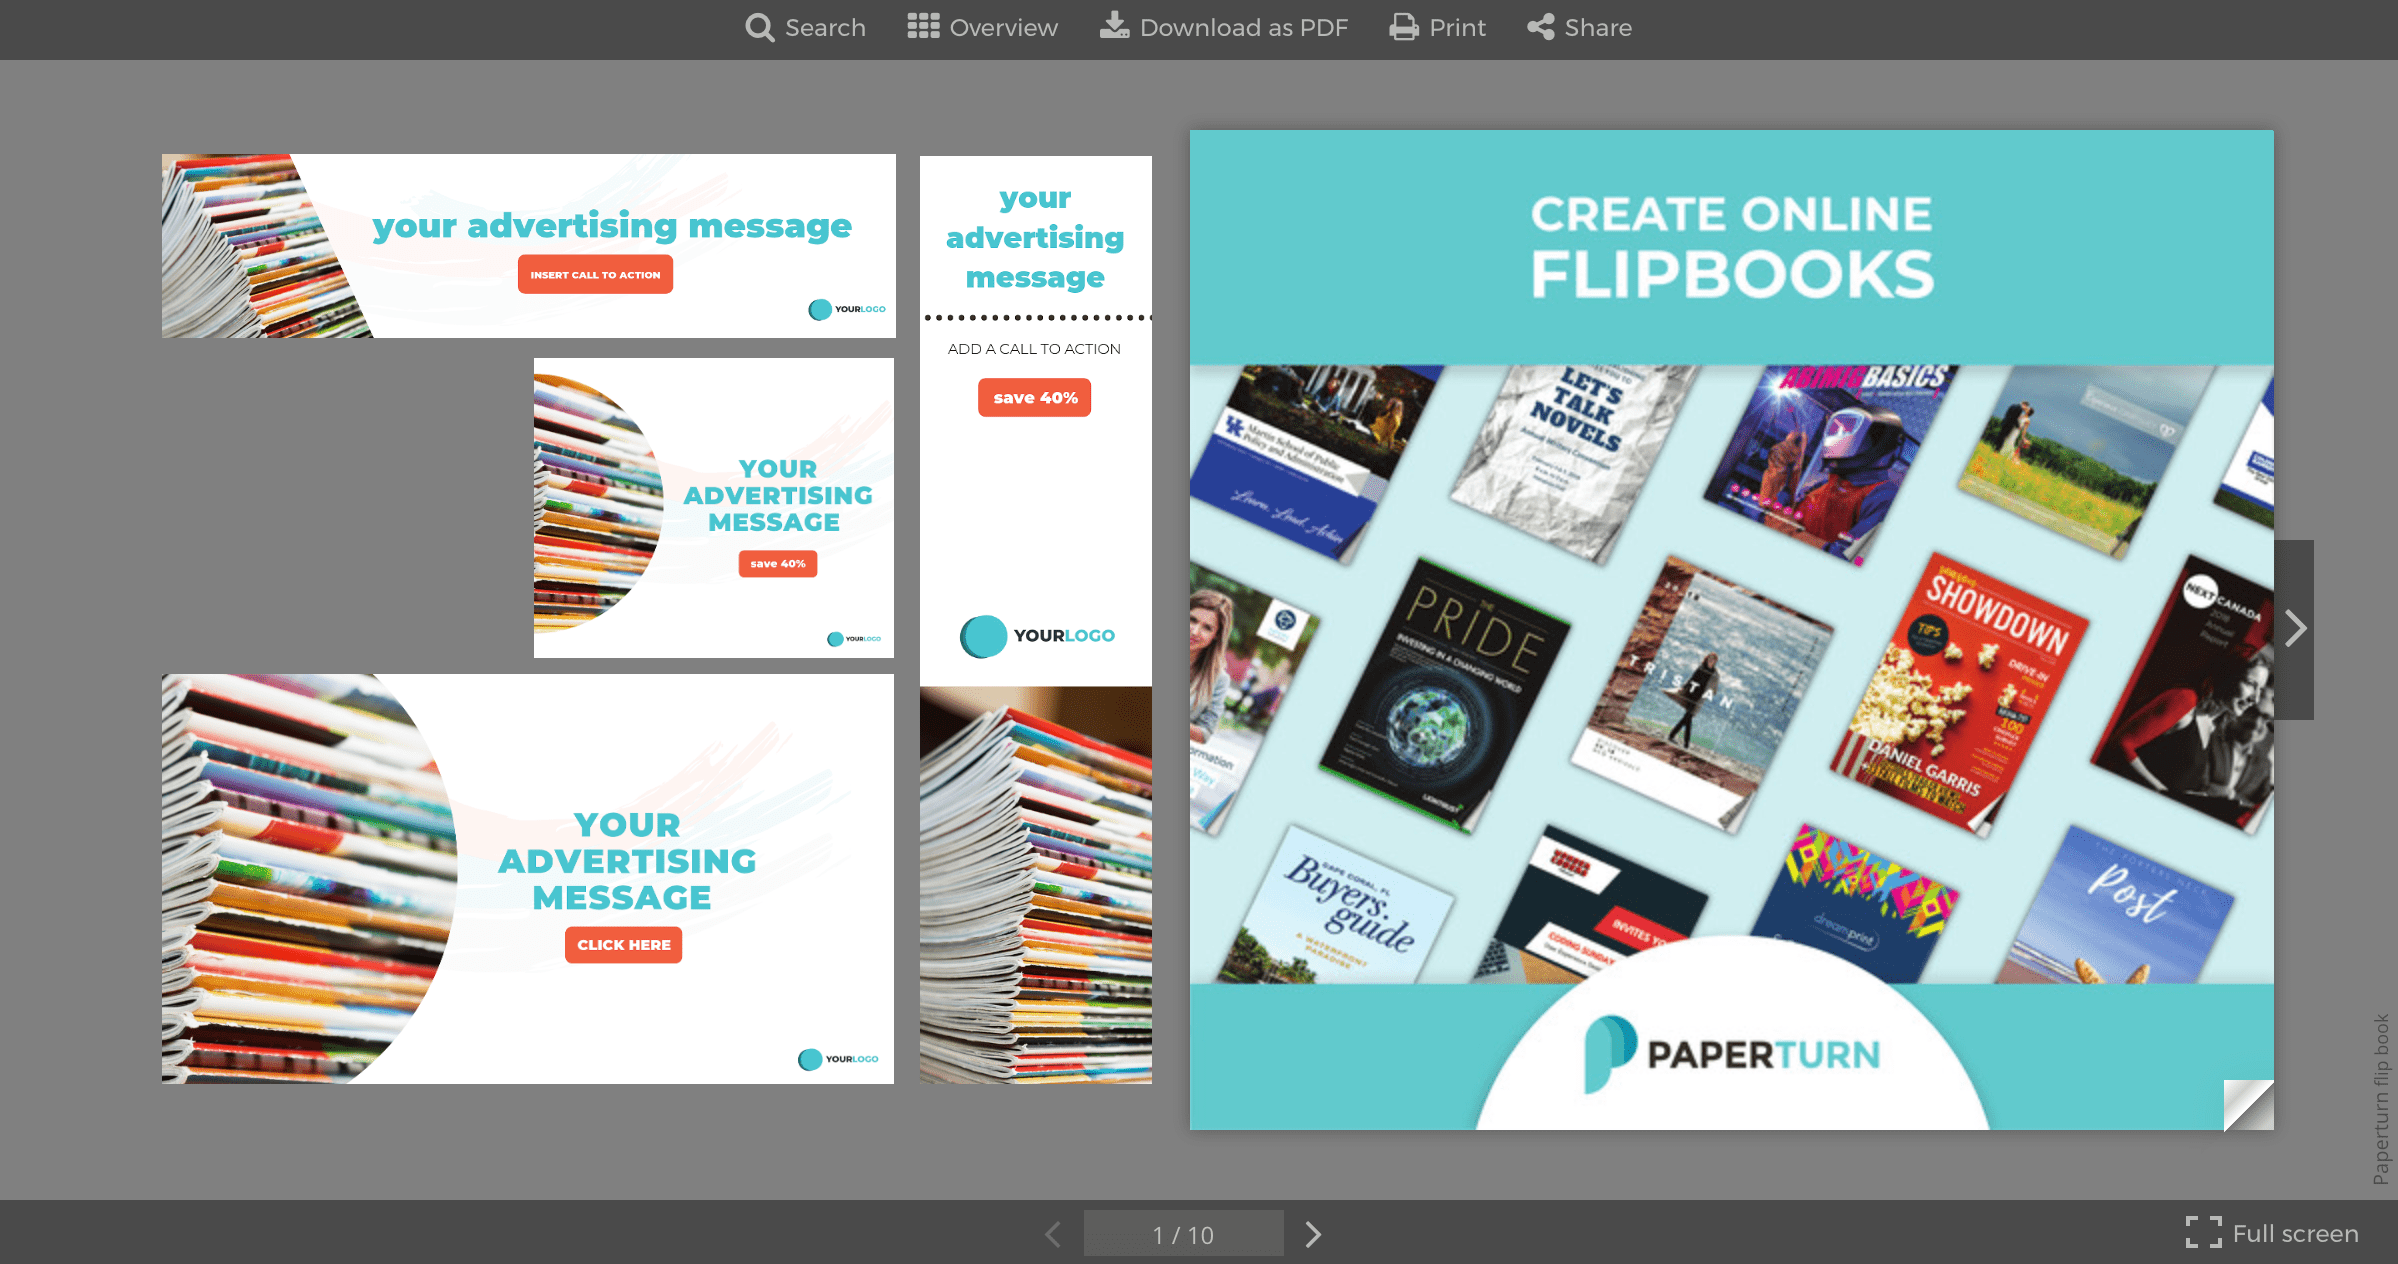 Examples of advertising messages displayed next to front cover of flipbook